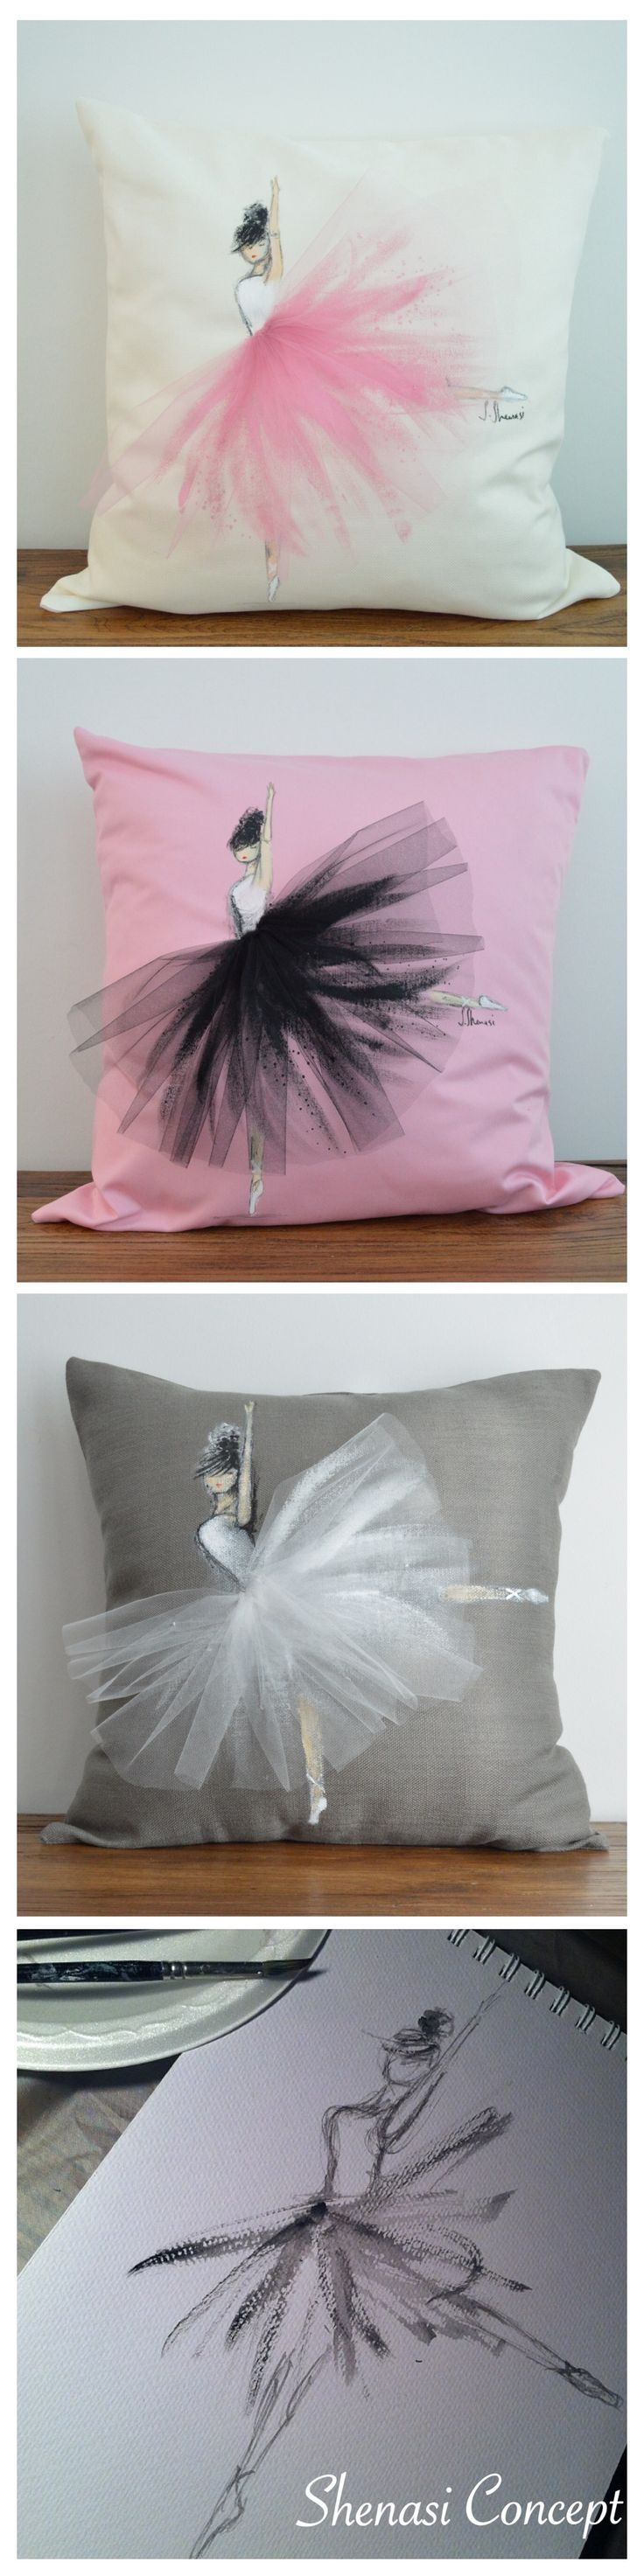 #pillow #ballerina